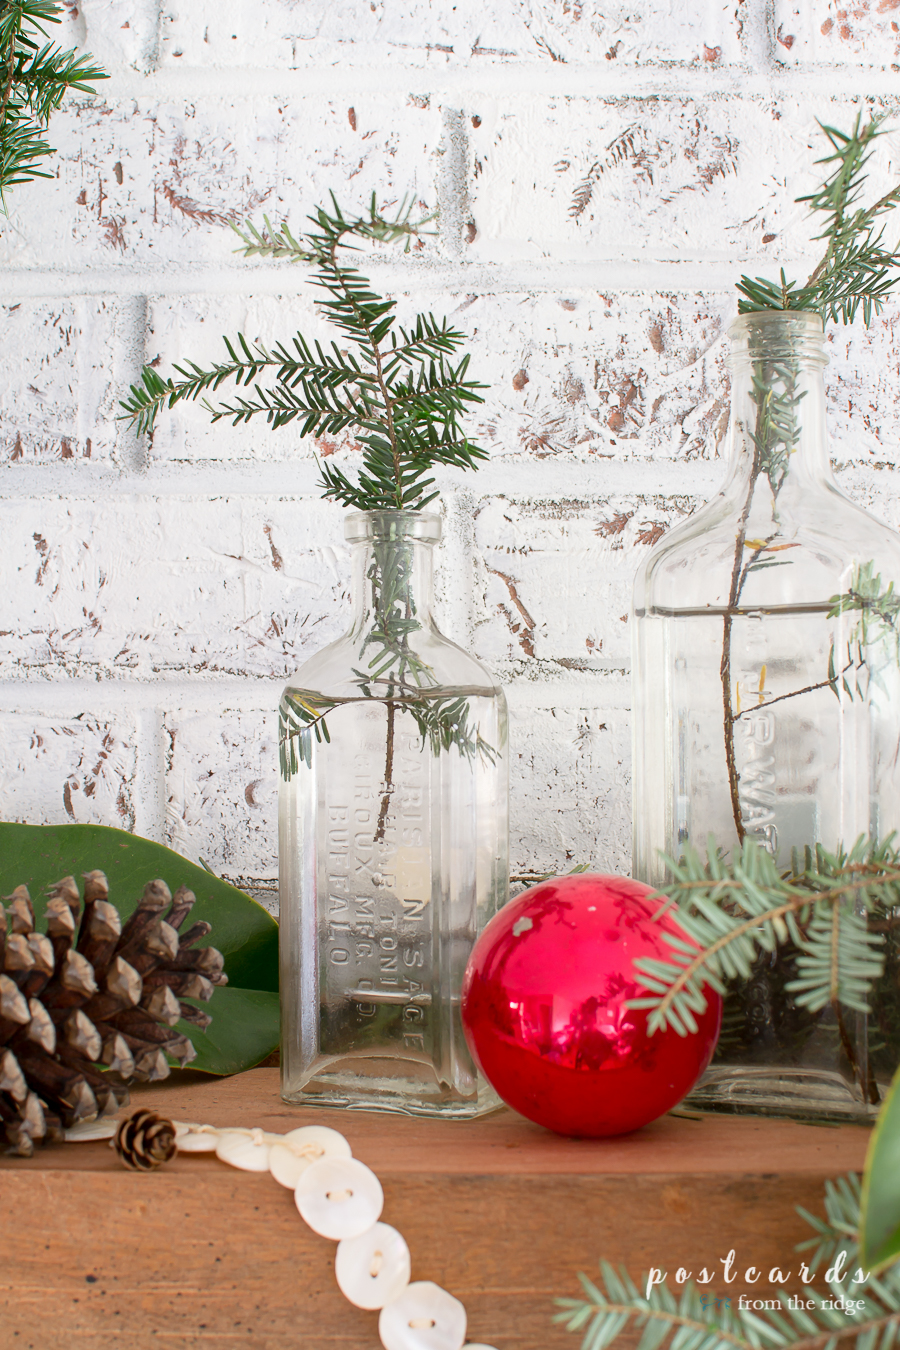 vintage glass bottle with hemlock branch